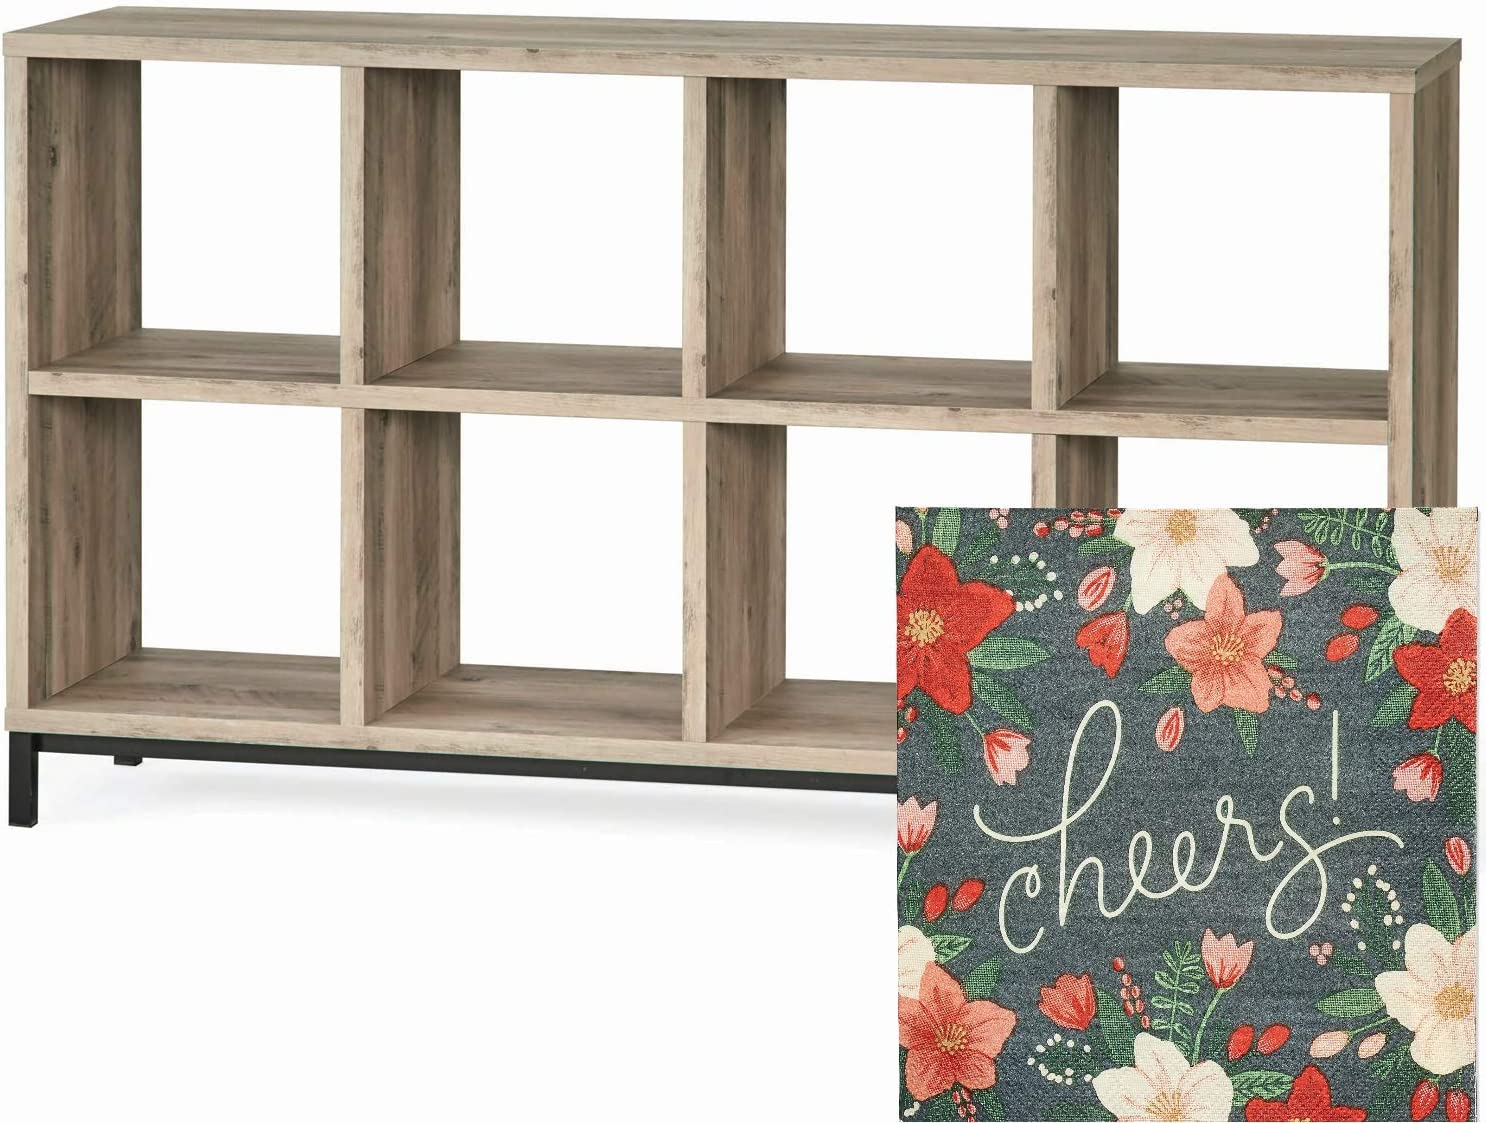 Better Homes and Gardens 8-Cube Organizer with Metal Base and Xmas Napkin Bundle, Rustic Gray